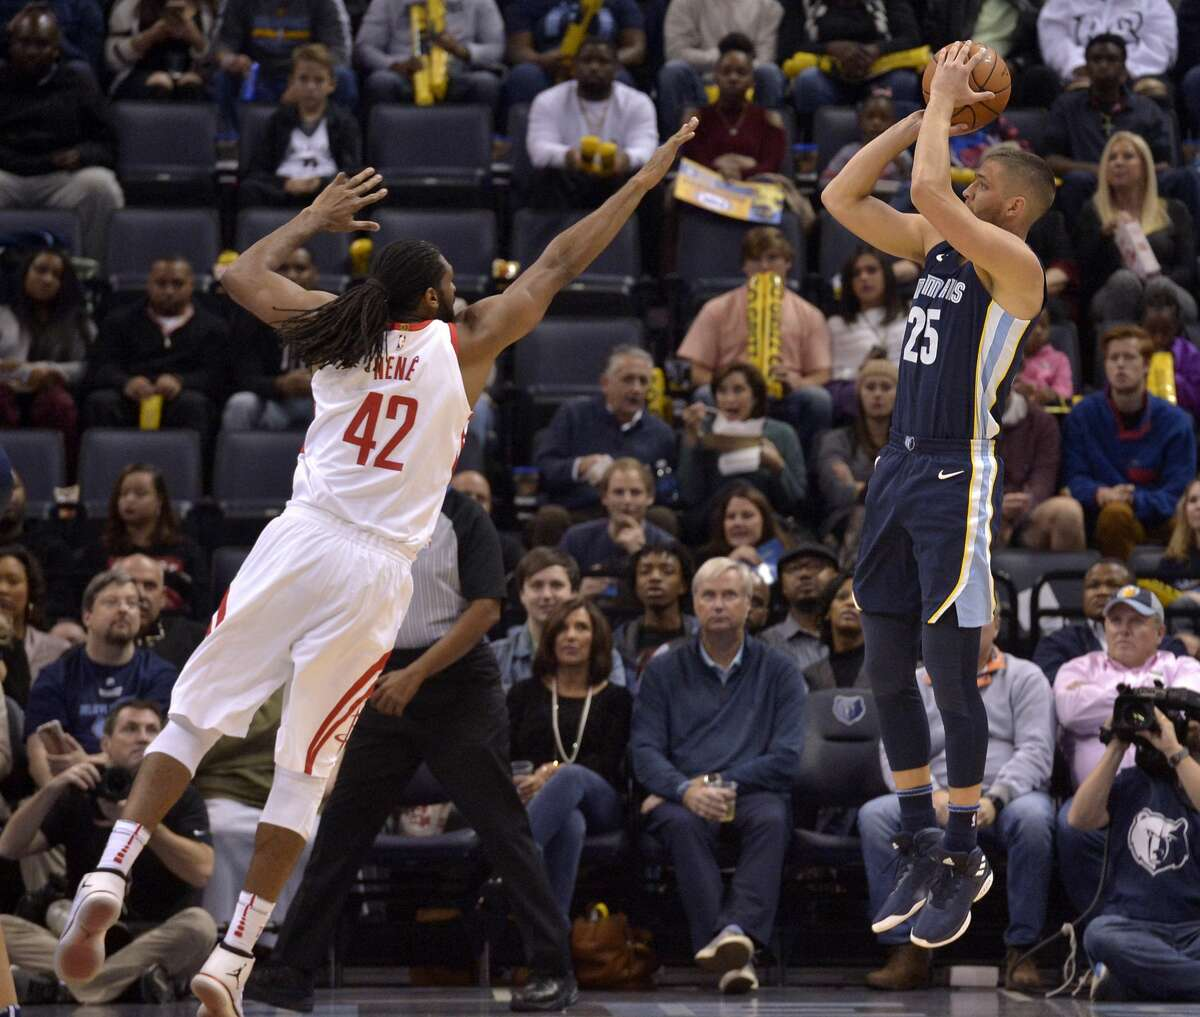 Memphis Grizzlies forward Chandler Parsons (25) makes a three-point shot against Houston Rockets center Nene (42) in the first half of an NBA basketball game Saturday, Oct. 28, 2017, in Memphis, Tenn. (AP Photo/Brandon Dill)